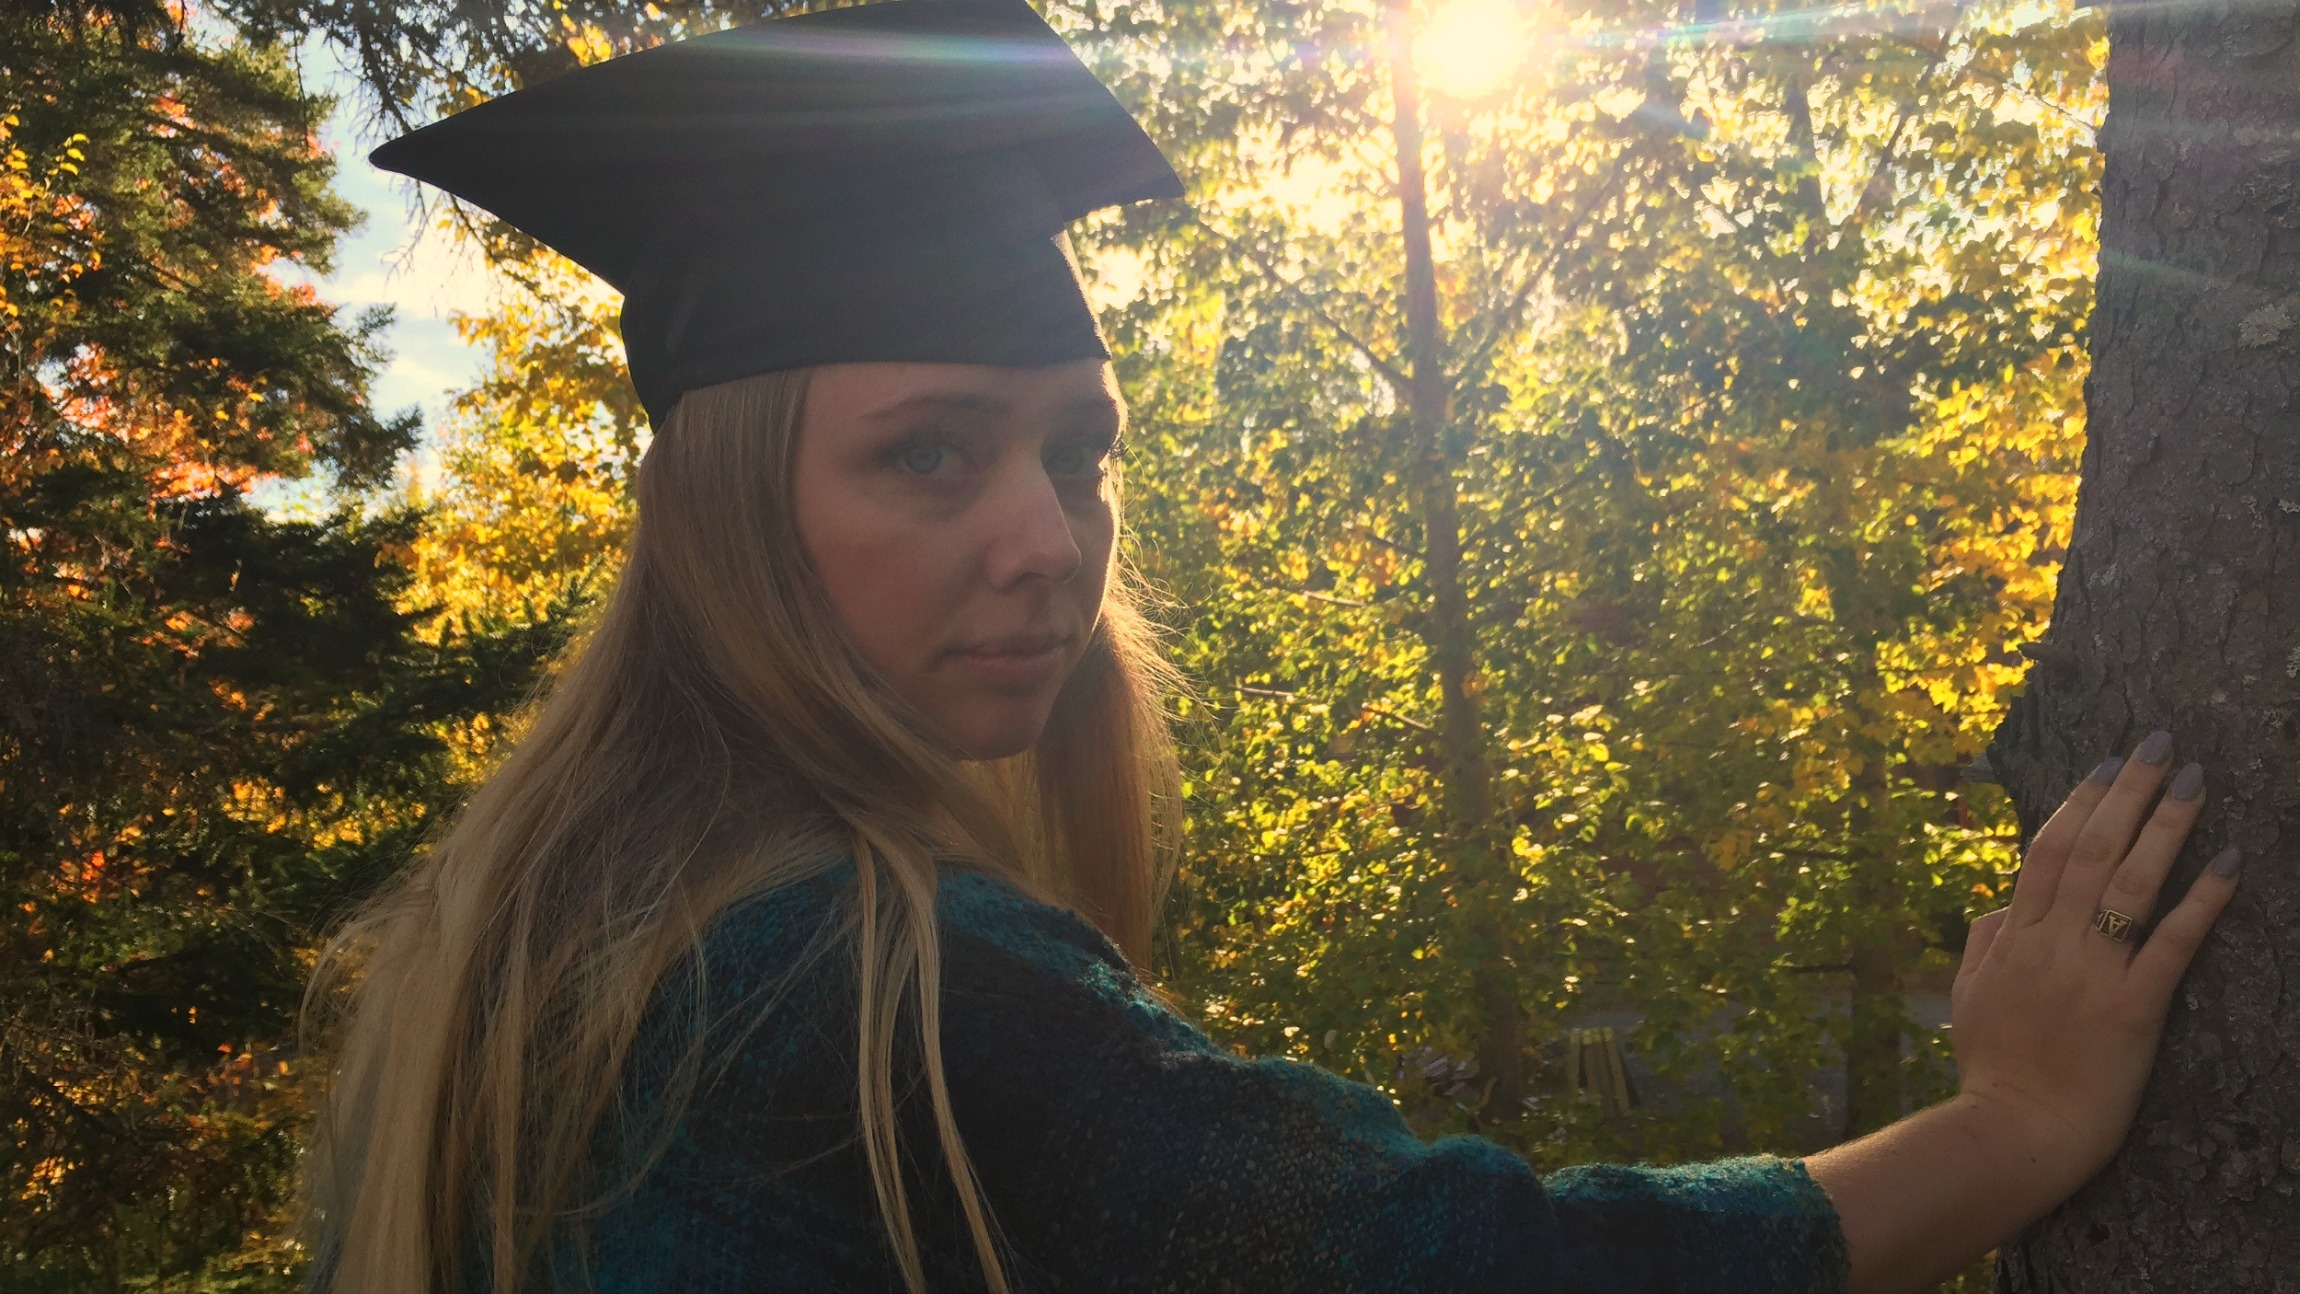 Recent Acadia graduate, Lacey Cox, has struggled with depression since finishing school.